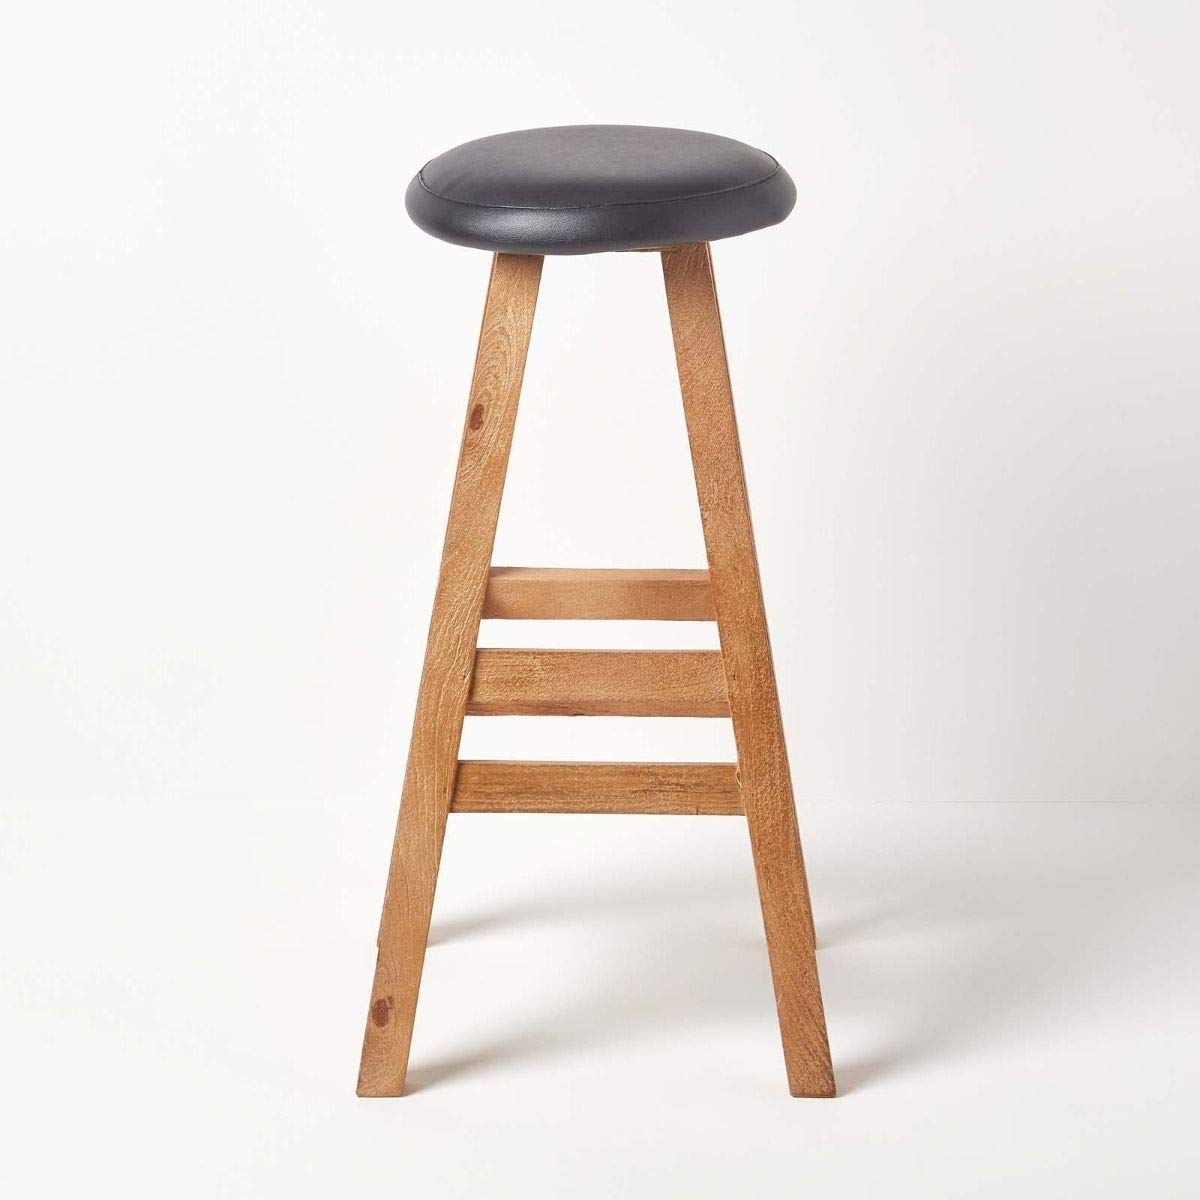 Aloope Wooden Round Shape Bar Stool Natural Mango Wood with Smooth Finish for Bar/Kitchen/Cafe/Counter/Restaurant Furniture Pre-Assembled - Black